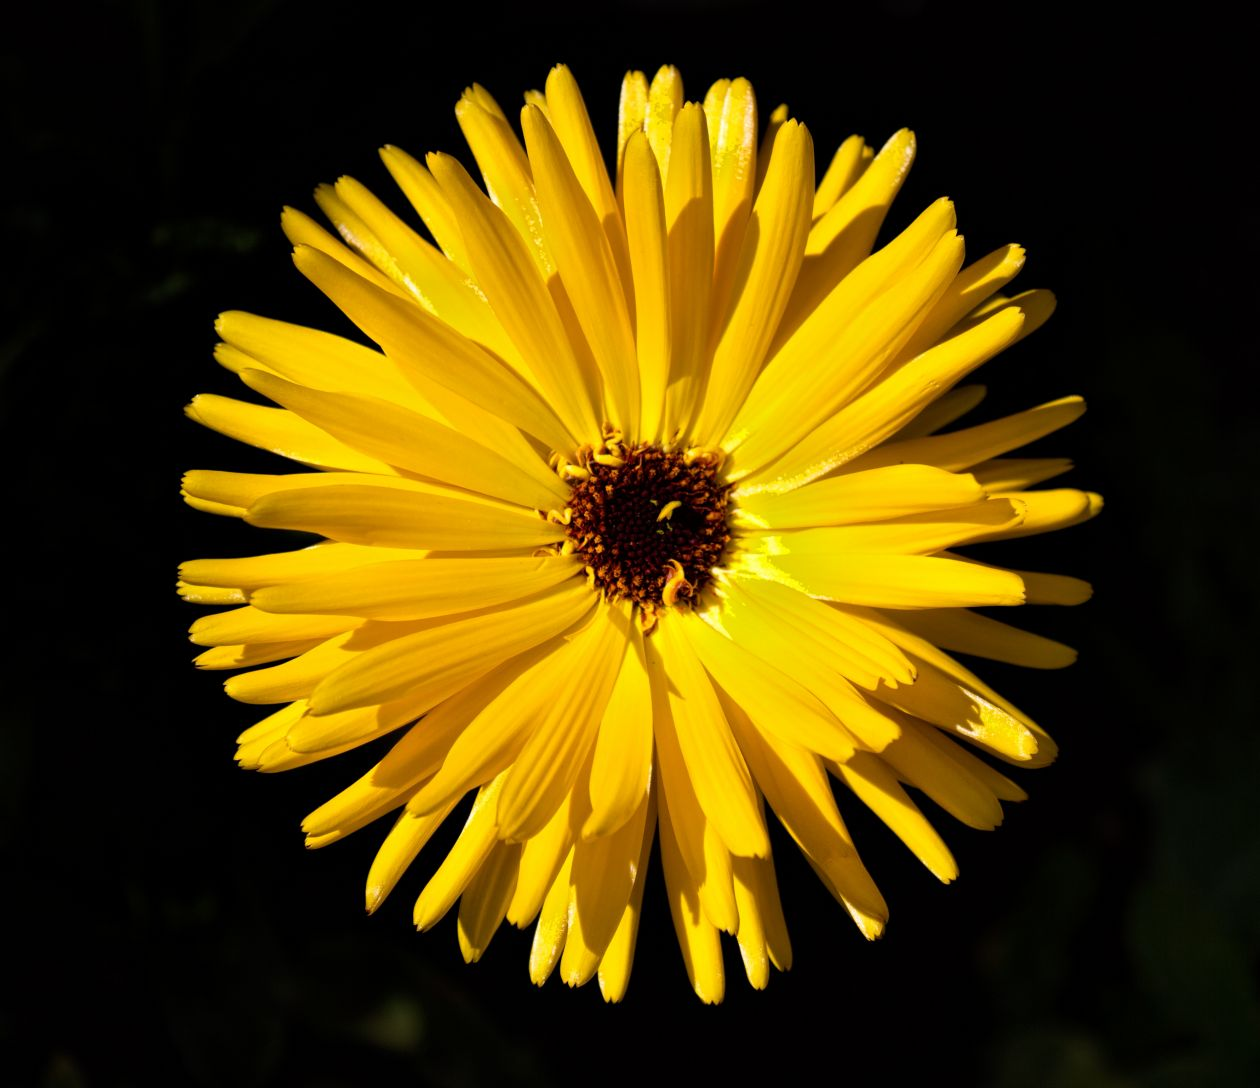 """Free photo """"Flower"""" by Bill Williams"""